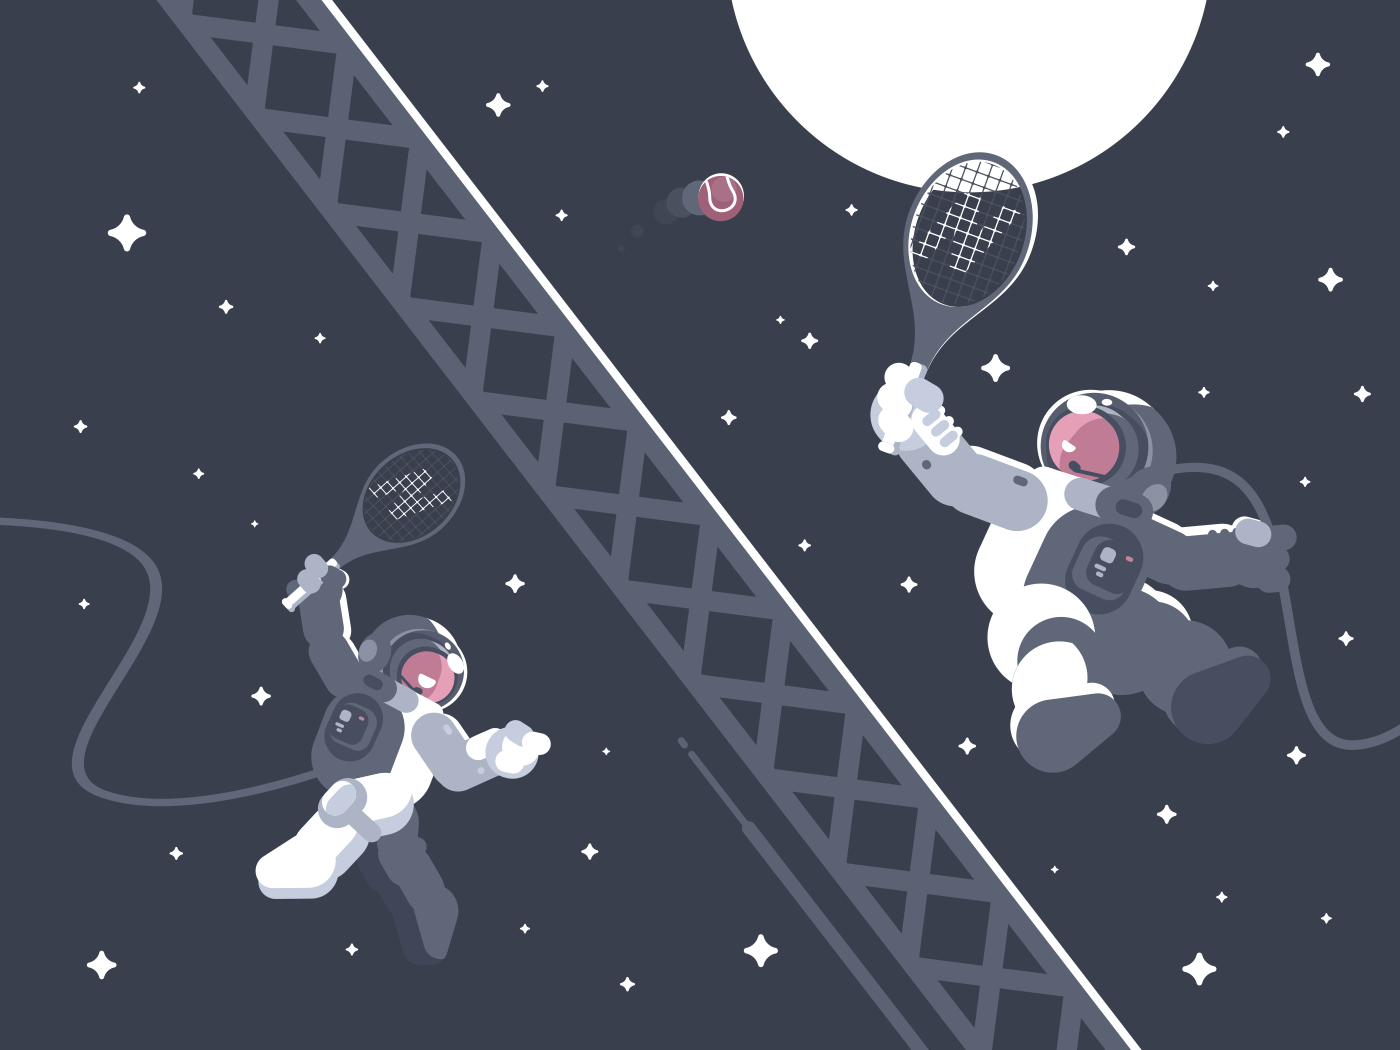 Astronauts playing tennis in outer space. Active sports in weightlessness. Vector illustration